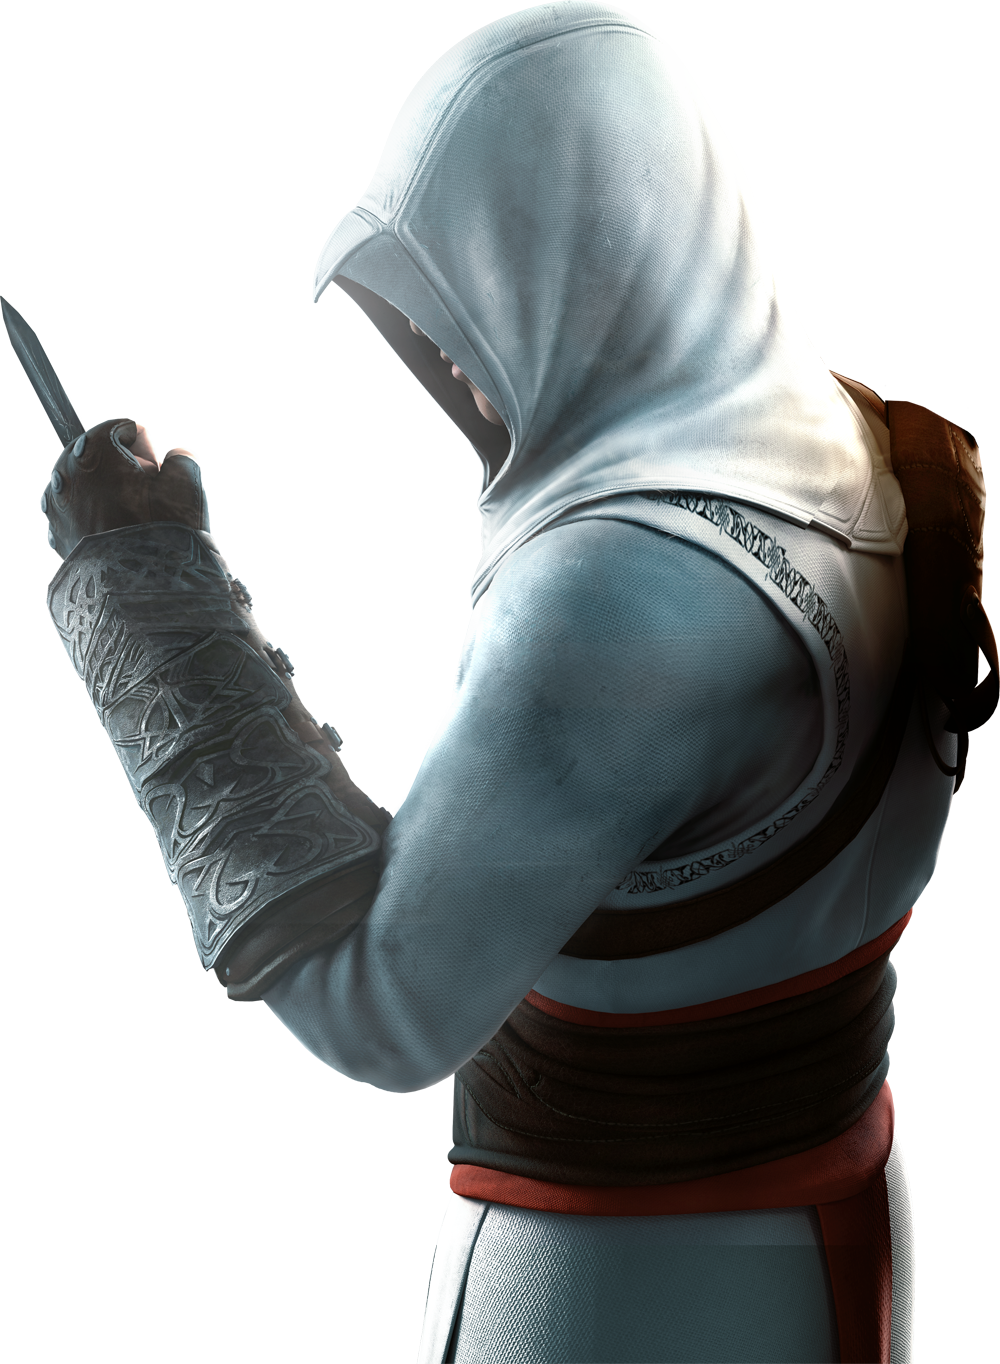 Altair Assassins Creed Image PNG Image